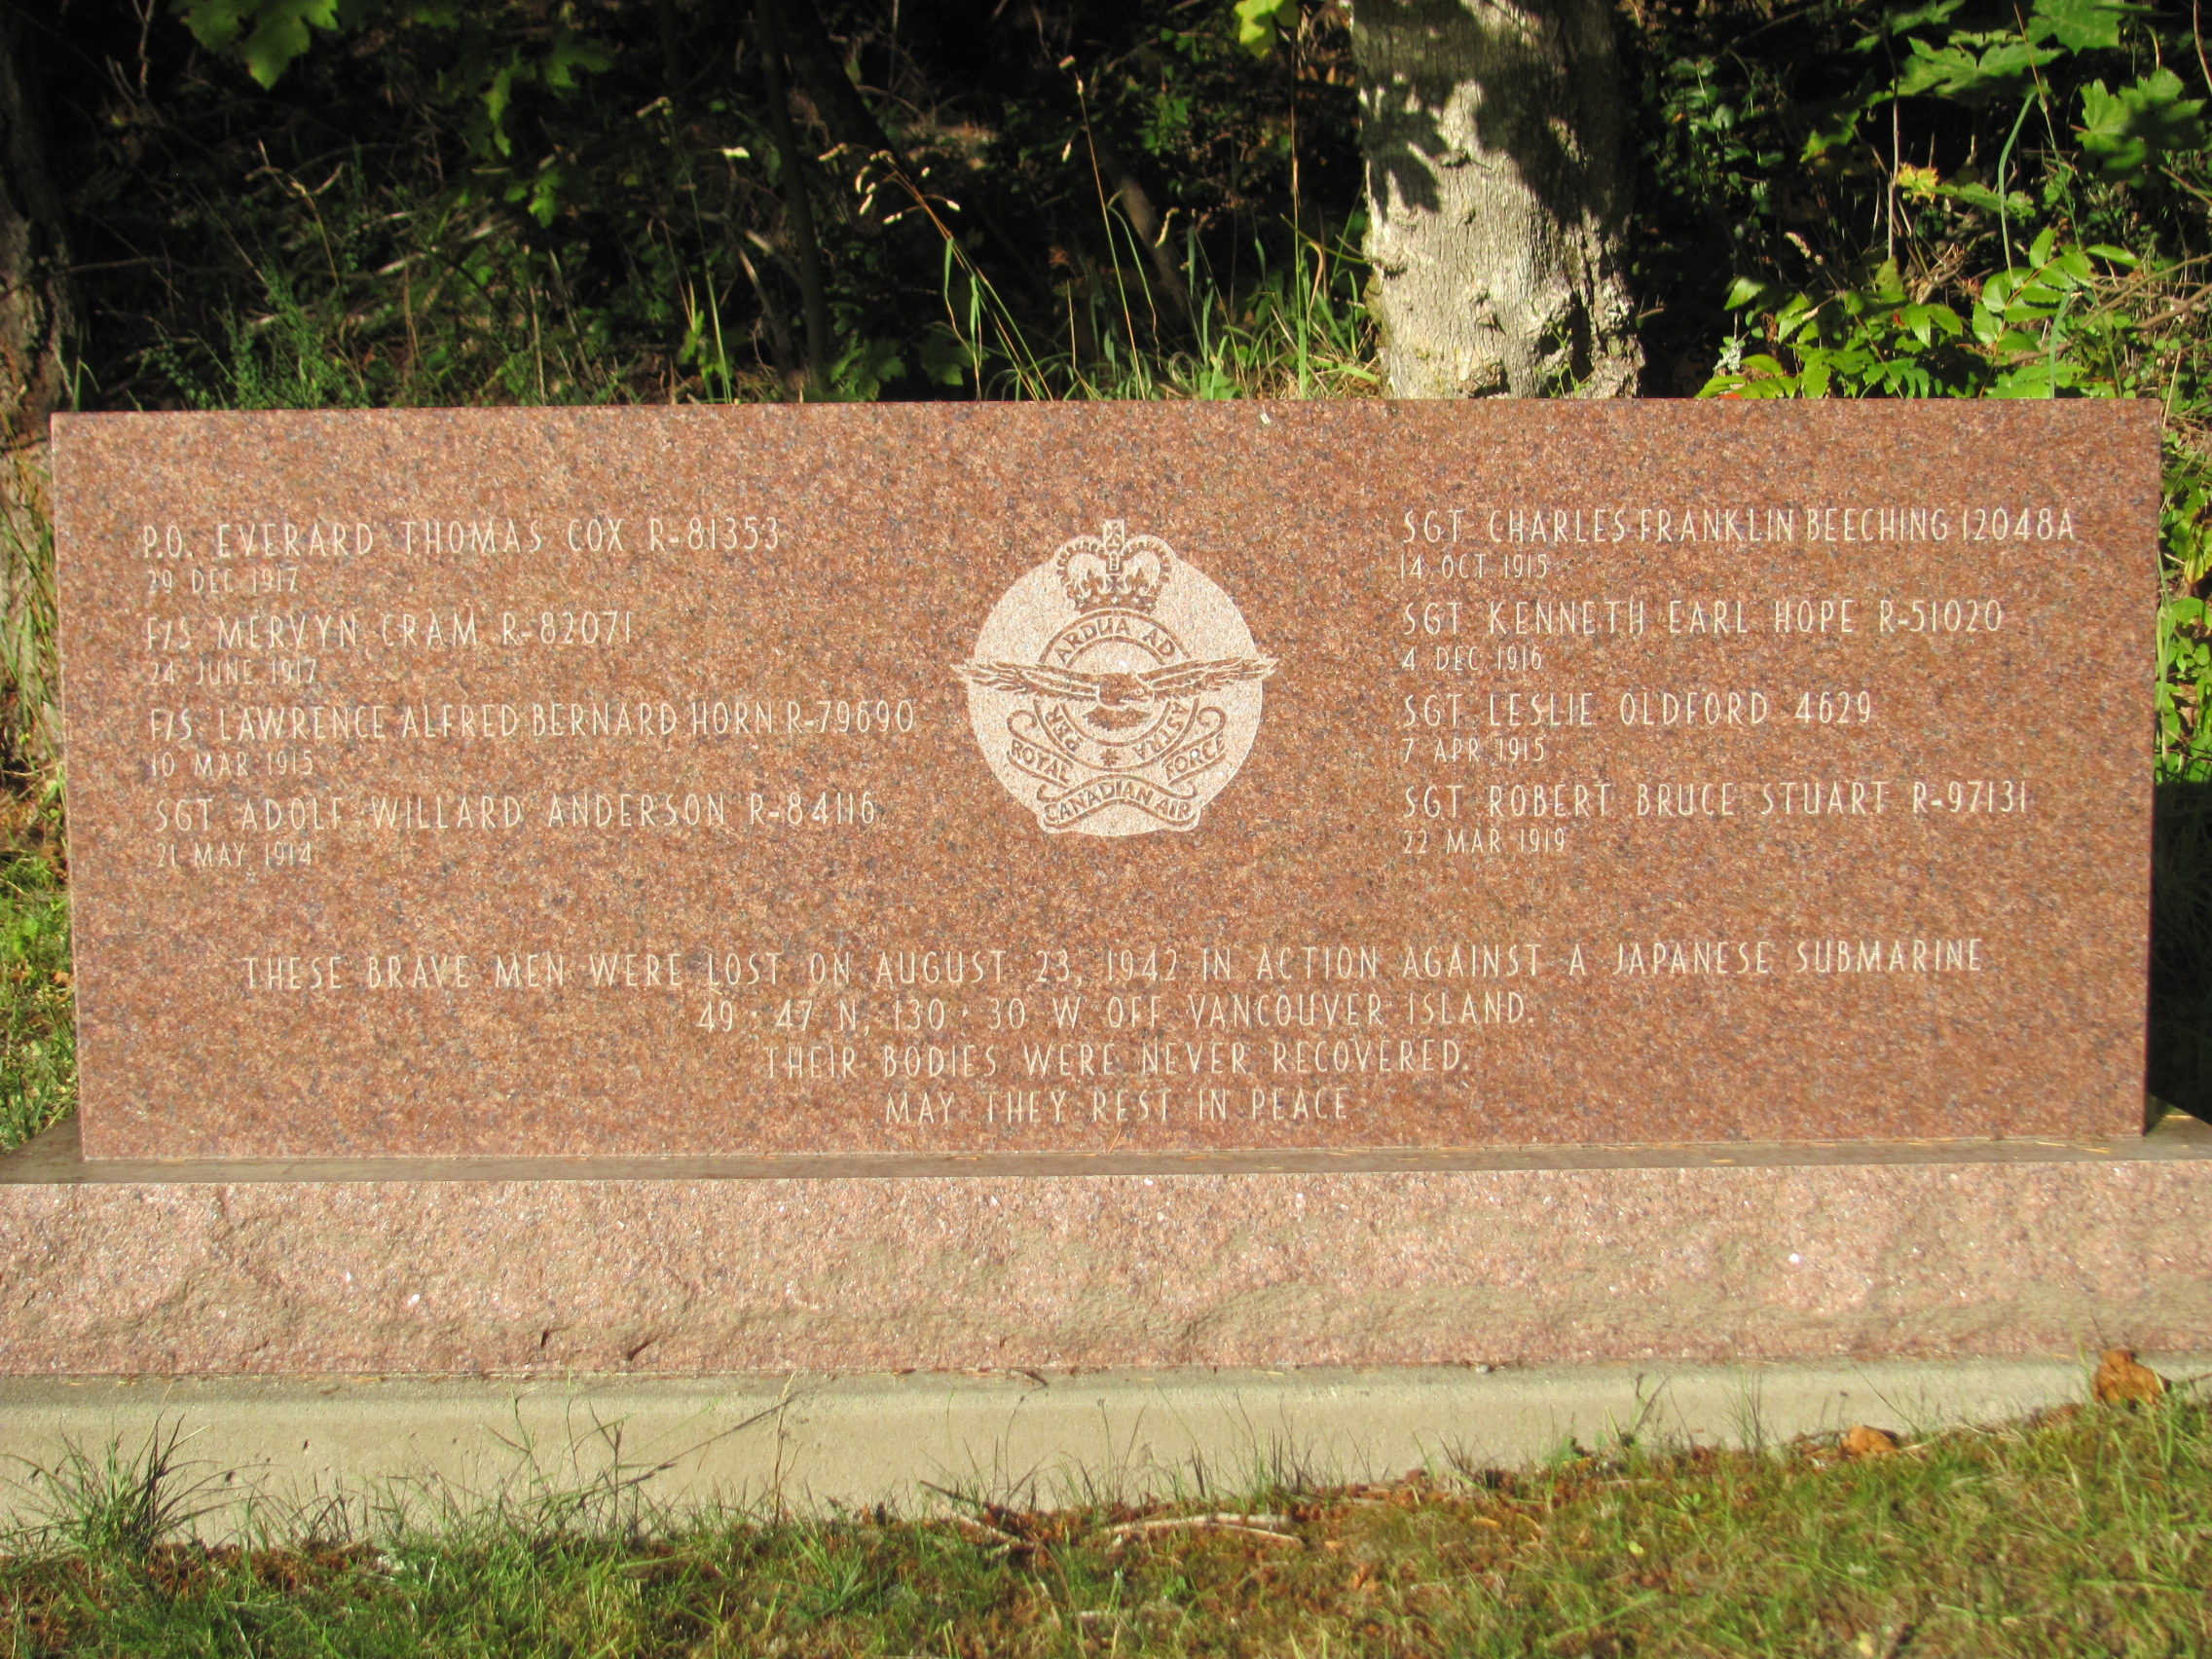 Memorial– Memorial for Lawrence Horn and 6 other R.C.A.F. personnel, lost at sea while engaging in battle against a Japanese submarine off the coast of Vancouver Island, British Columbia. This memorial stands in Royal Oak Burial Park in Victoria, B.C.